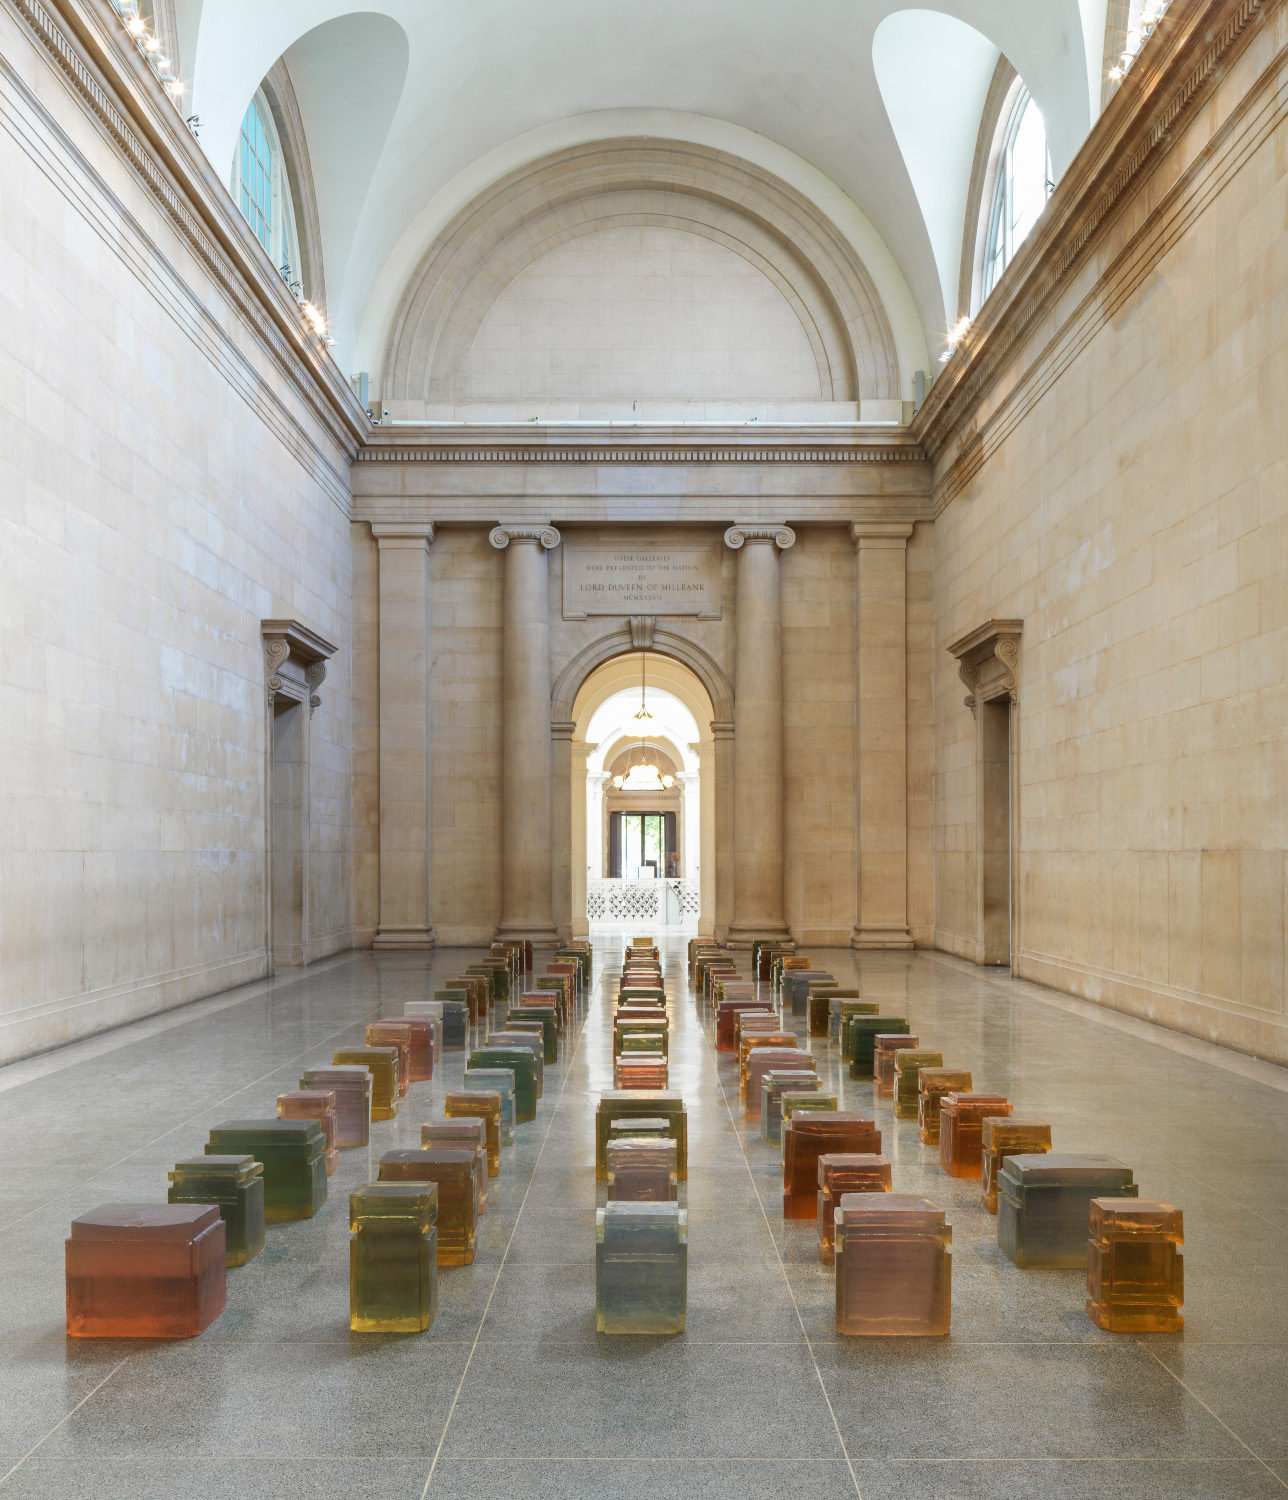 Rendering the Invisible Visible: Rachel Whiteread in London - AWARE Artistes femmes / women artists